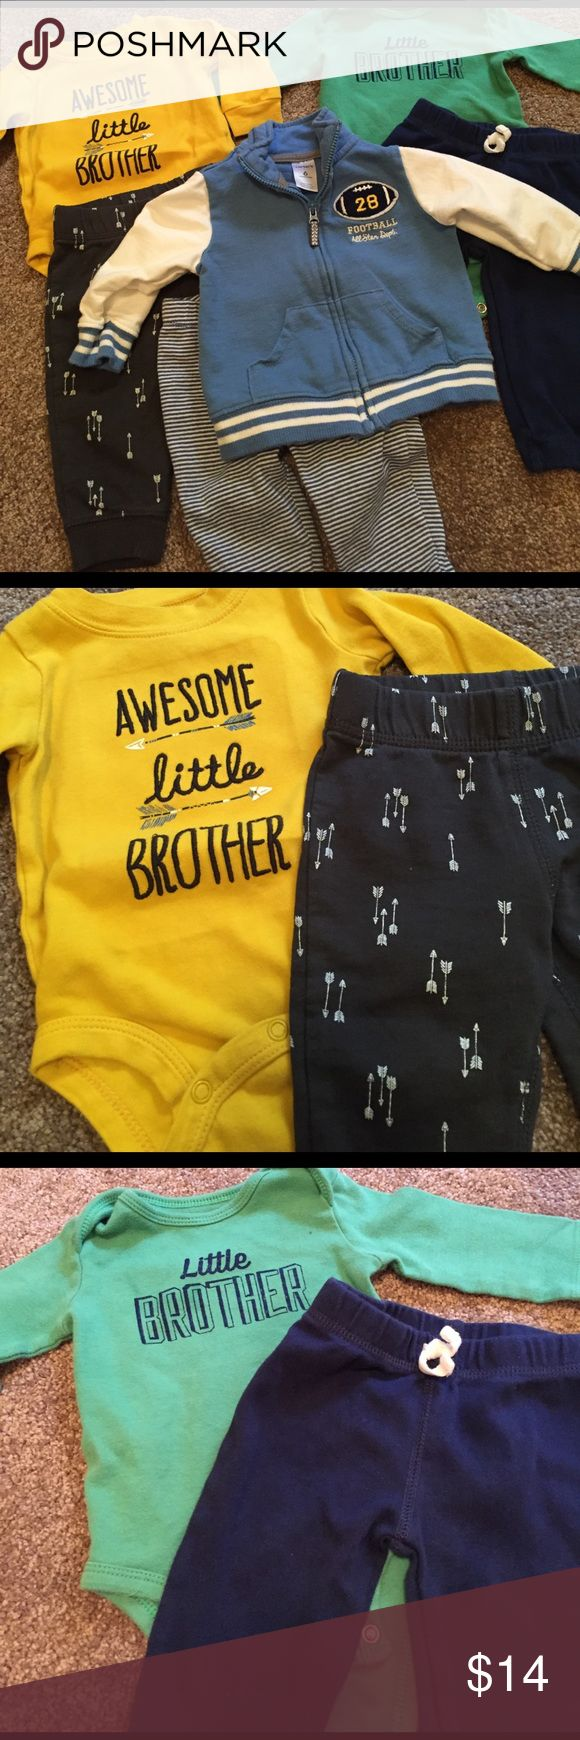 🏈Awesome baby brother bundle ⛺️ ⛺️ Come on, this bundle is oh so adorable. Two baby brother onesies with coordinating the pants, and a super cute football jacket with striped matching pants. 🏈 Carter's Matching Sets